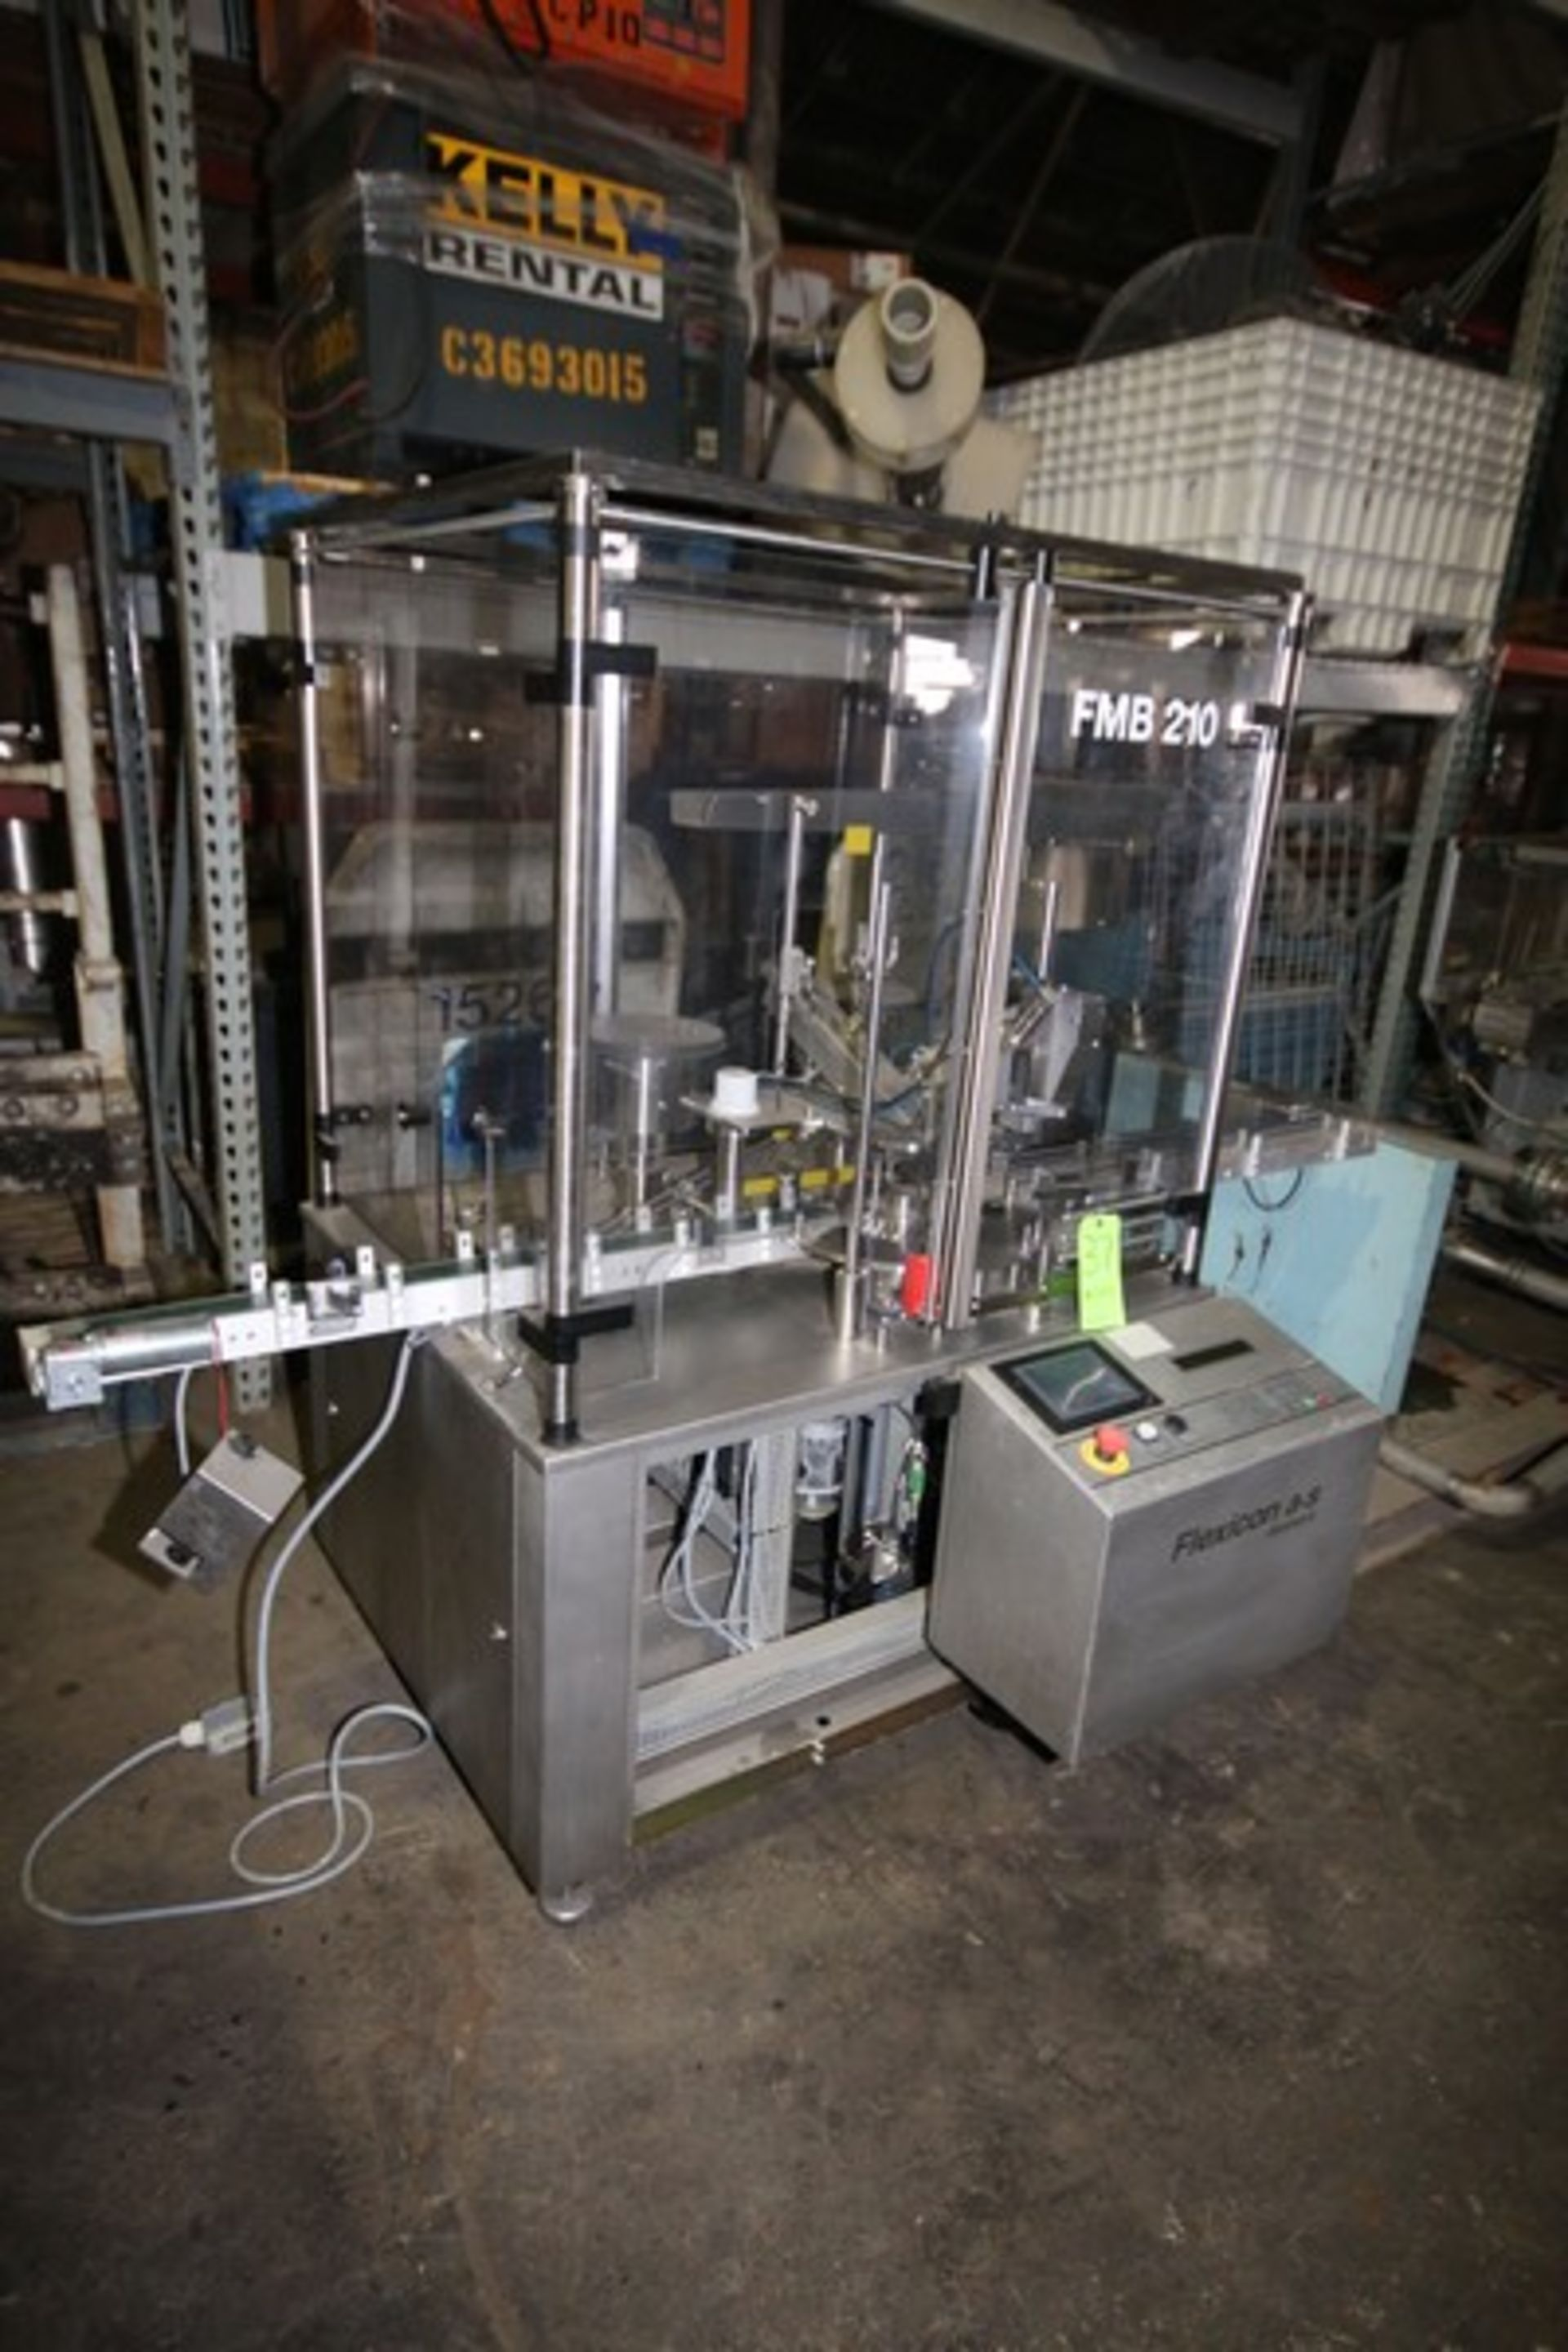 Lot 37 - Flexicon Monobloc Vial Filling and Capping Machine, M/N FMB210, S/N 09309799, 230 Volts, with VFD